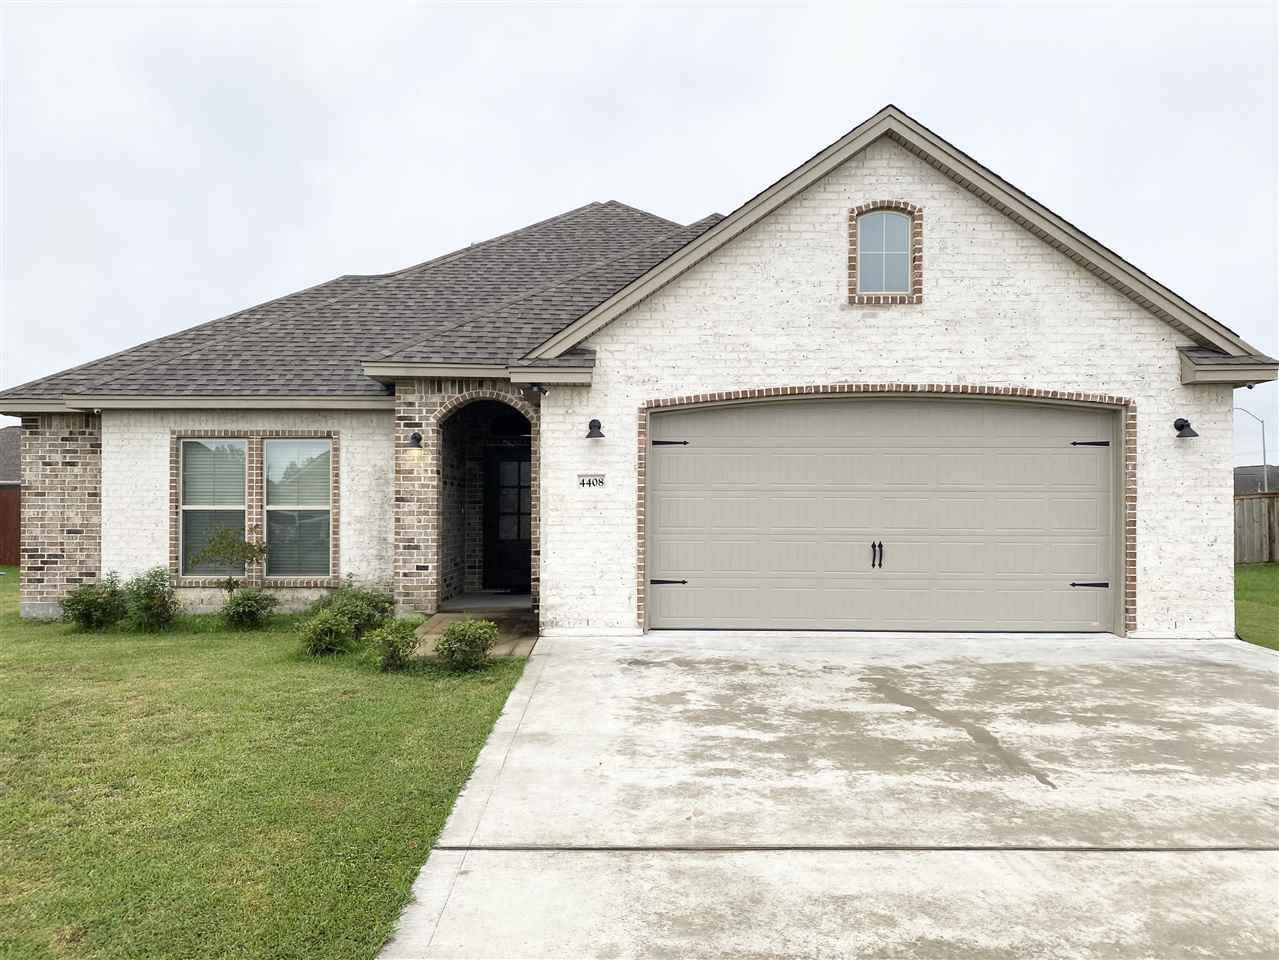 4408 Persimmon Circle - Photo 1